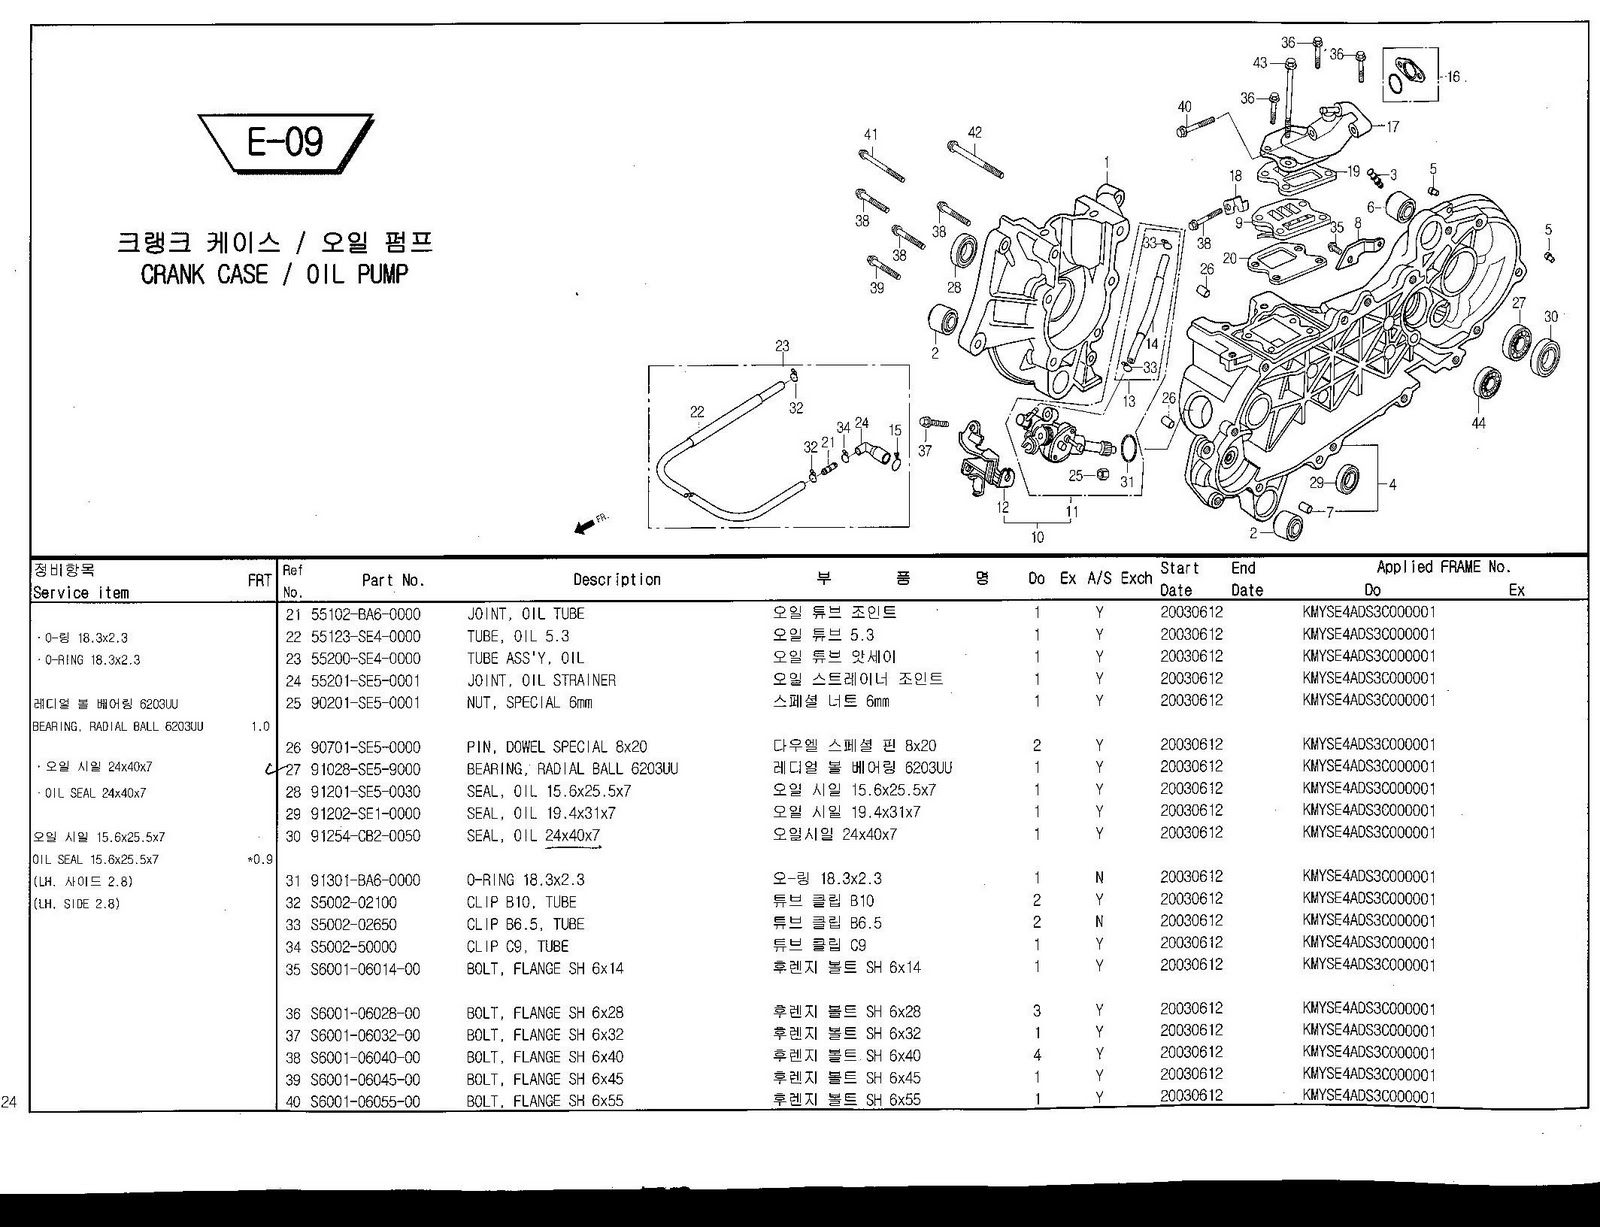 [DIAGRAM] 2007 Taotao 110cc Atv Wiring Diagram FULL